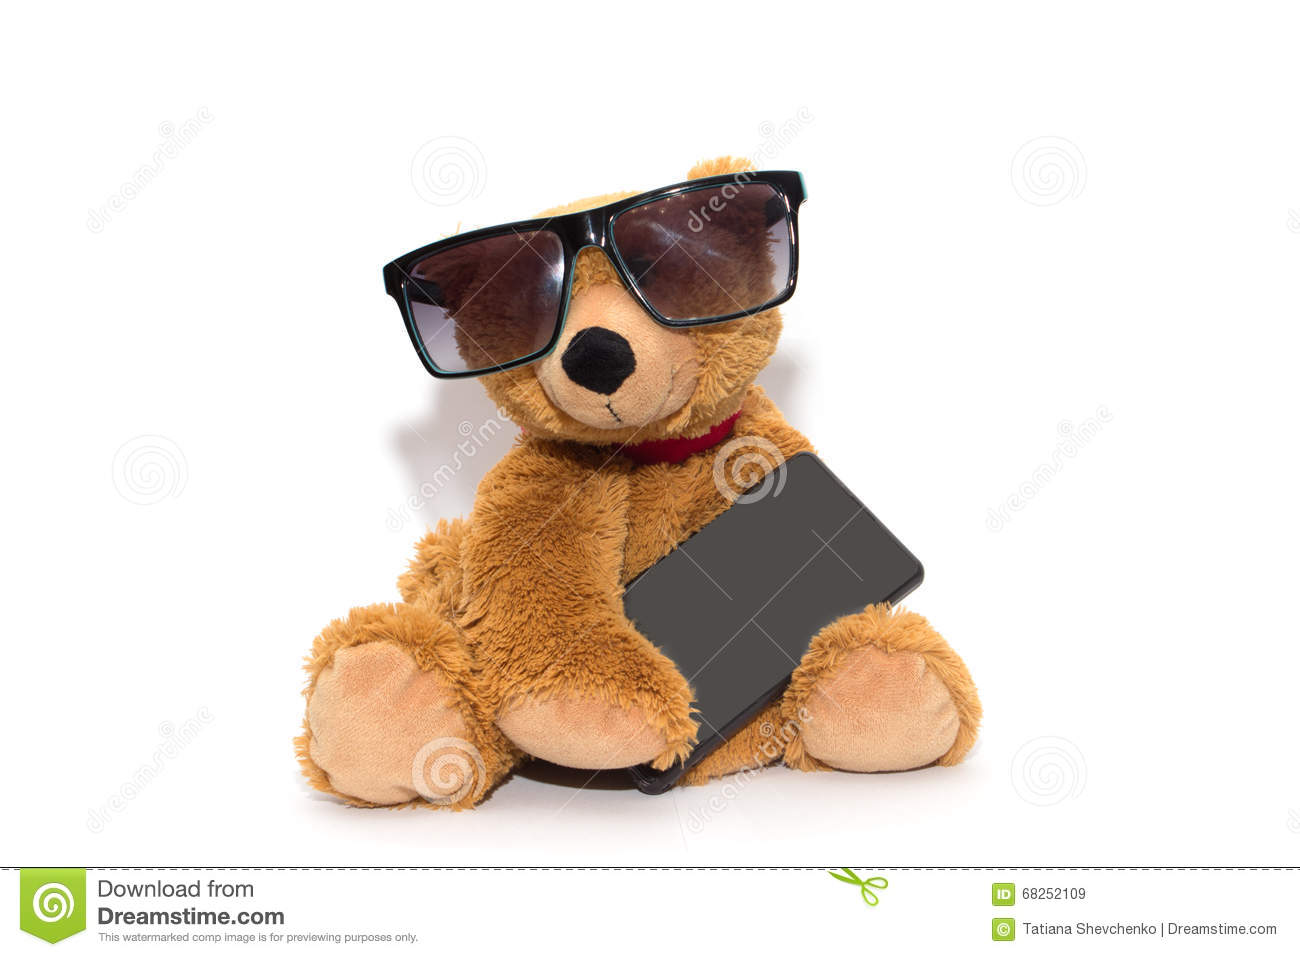 a57ee18e5cd Cool Teddy Bear In Sunglasses With Phone Isolated Stock Image ...